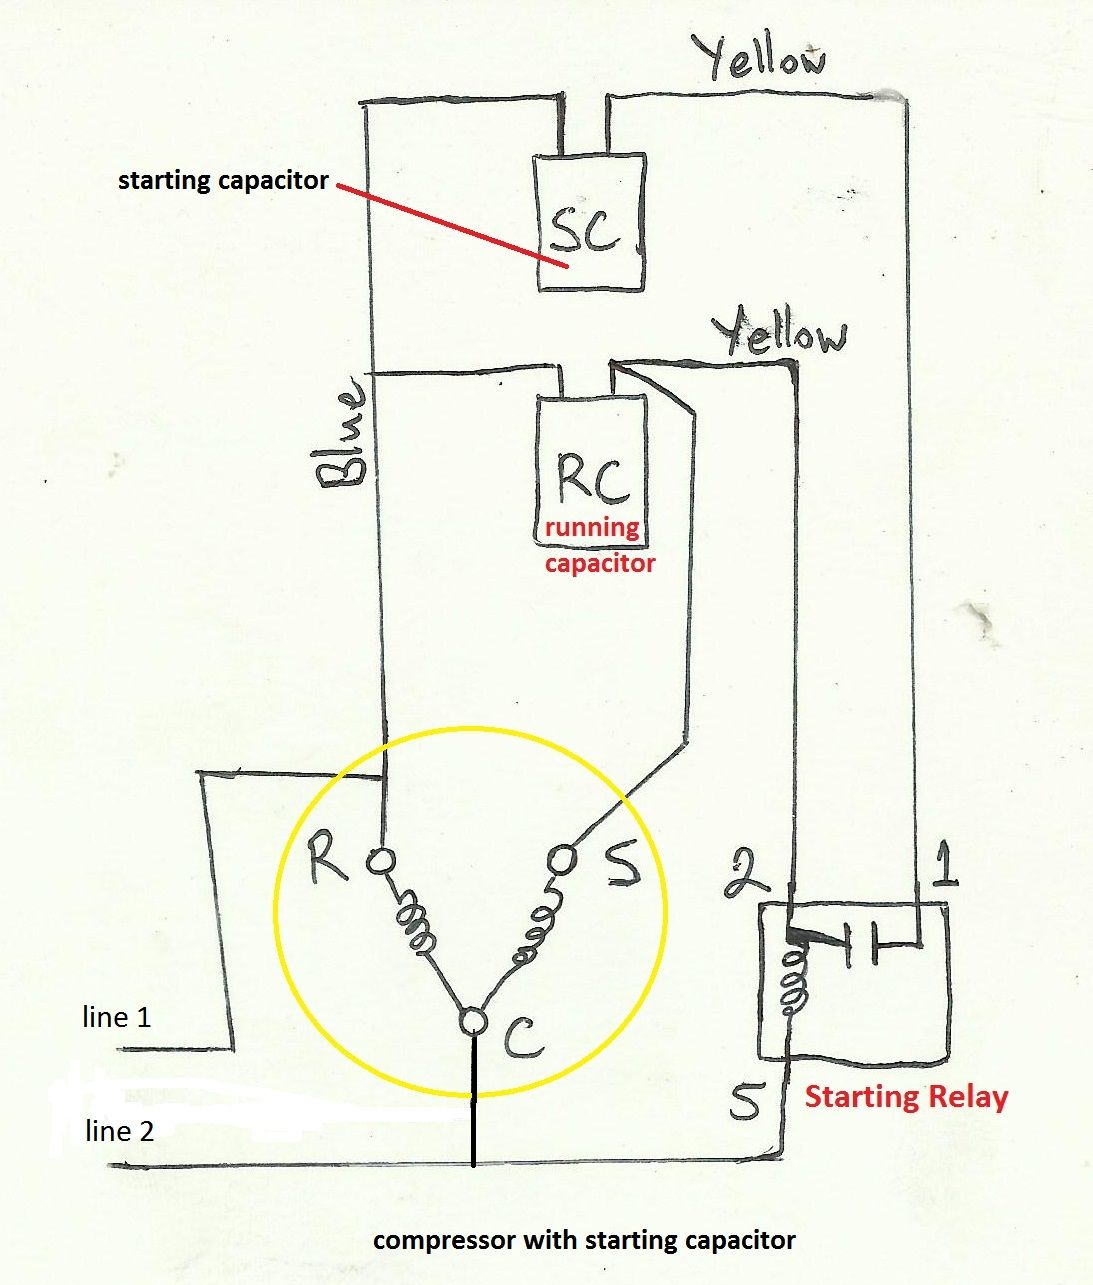 Whirlpool Window Air Conditioner Wiring Diagram Automotive Rotary Switch Ac Relay Third Level Rh 16 13 Jacobwinterstein Com Green Black And White